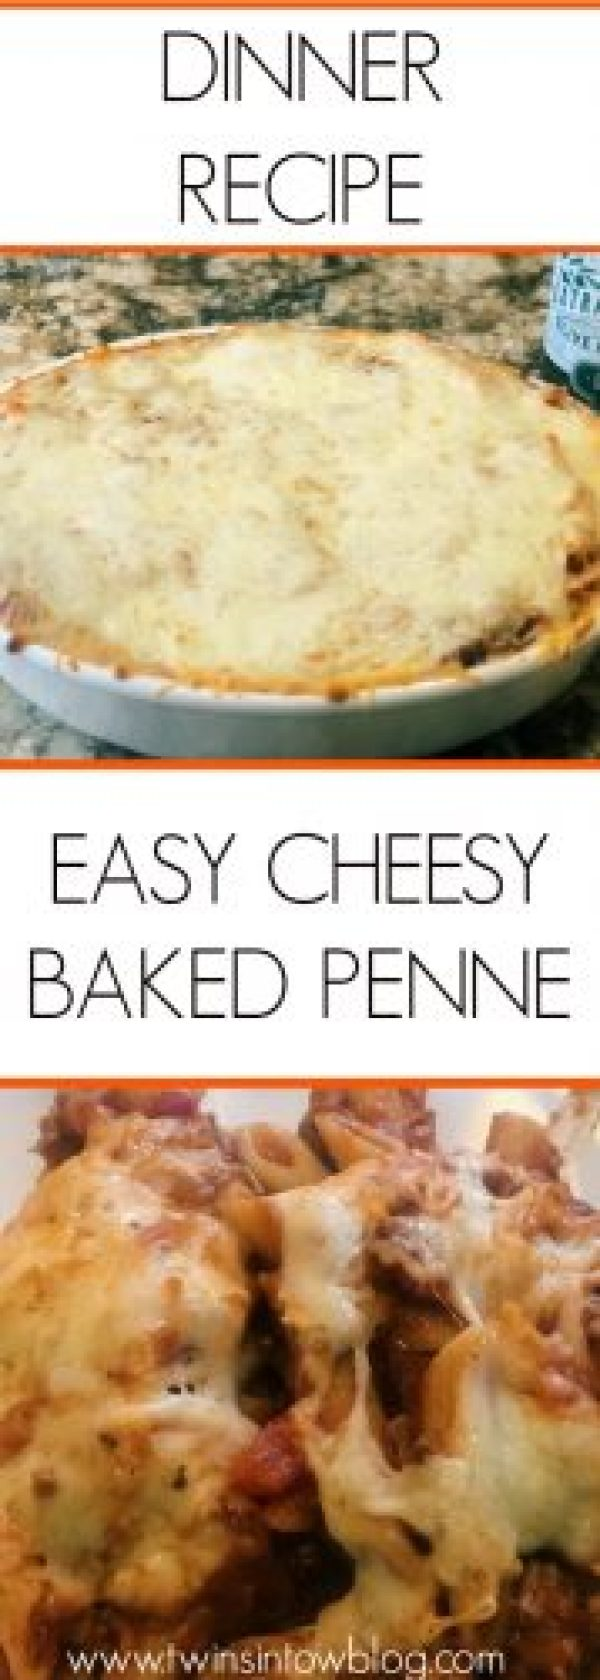 baked penne